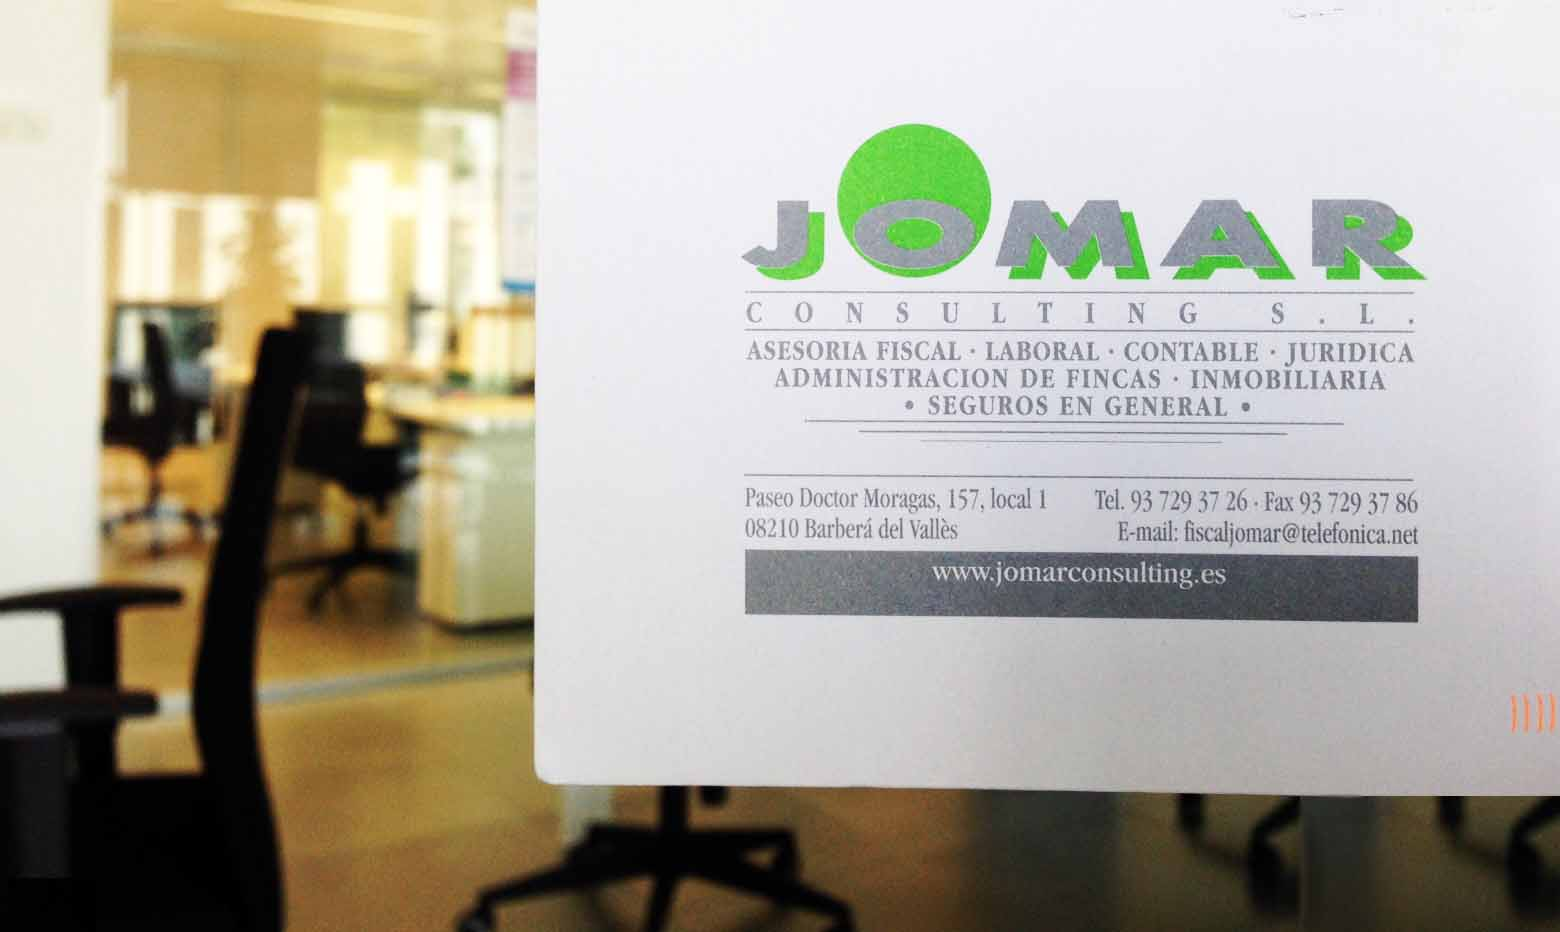 Jomar Consulting sponsored a worldcoo project up to 1400€